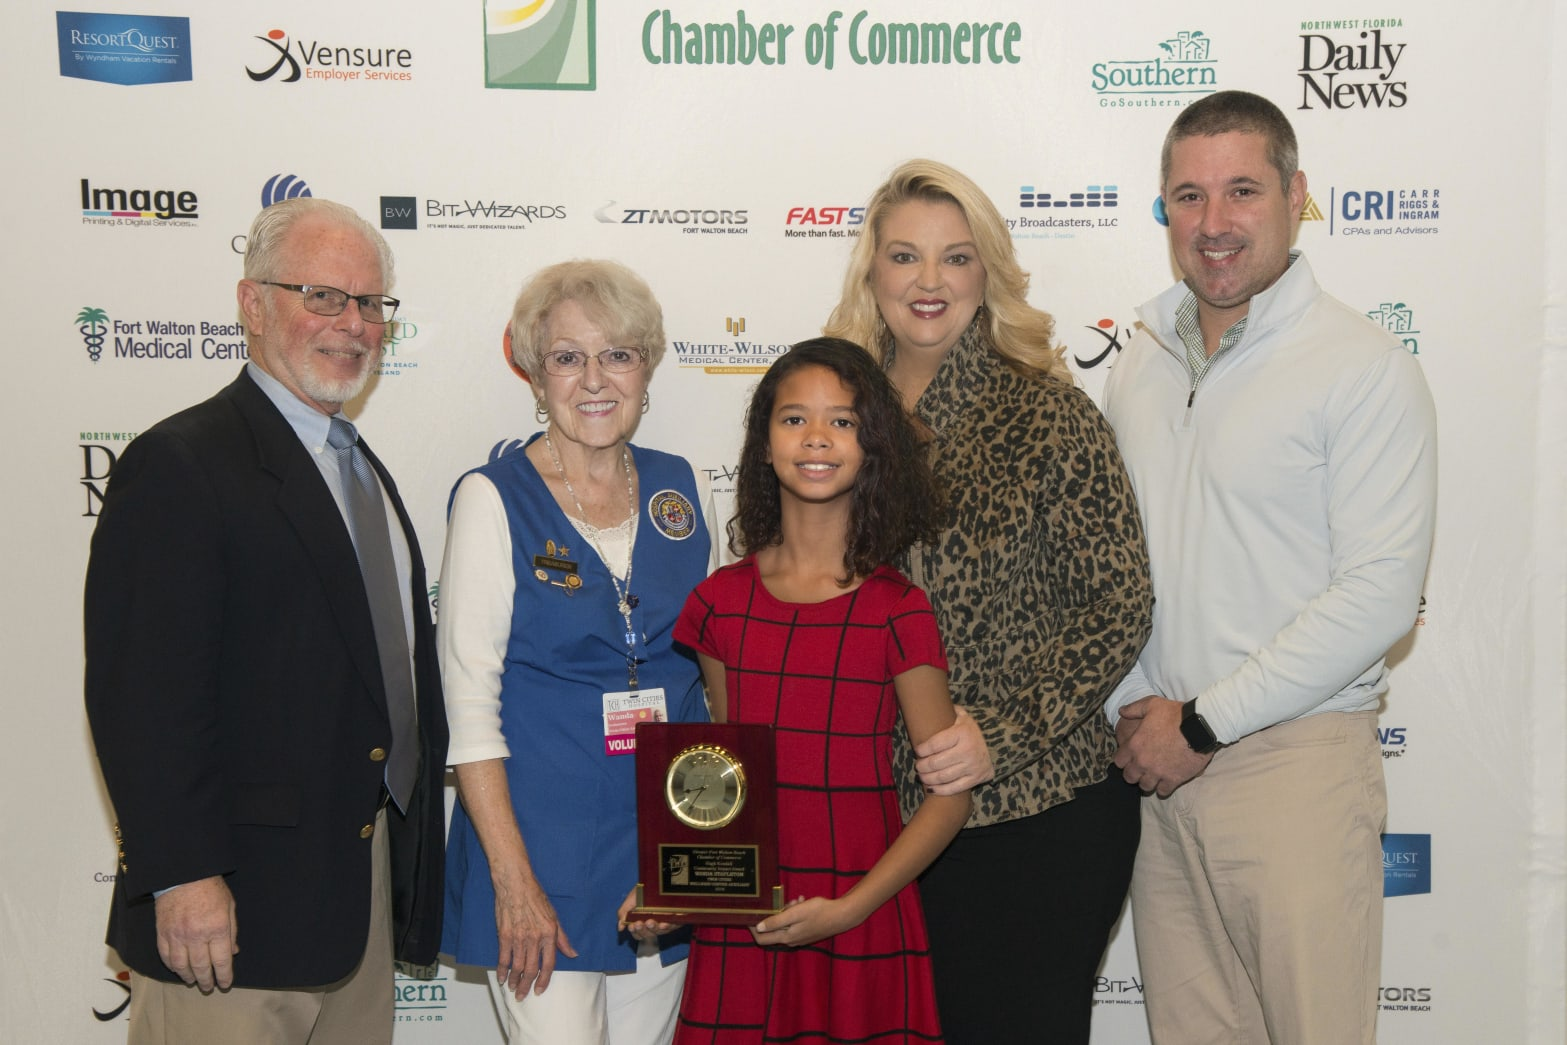 The winner of the Inaugural Hugh Kendall Community Impact Award in 2018 - Wanda Stapleton from Twin Cities Hospital - pictured here with (from left) Nick Chubb, 2018 Chamber Chair; Ms. Stapleton; Maci Kendall, Hugh's daughter; Jill Kendall, Hugh's widow; and Bobby Kendall, Hugh's son.